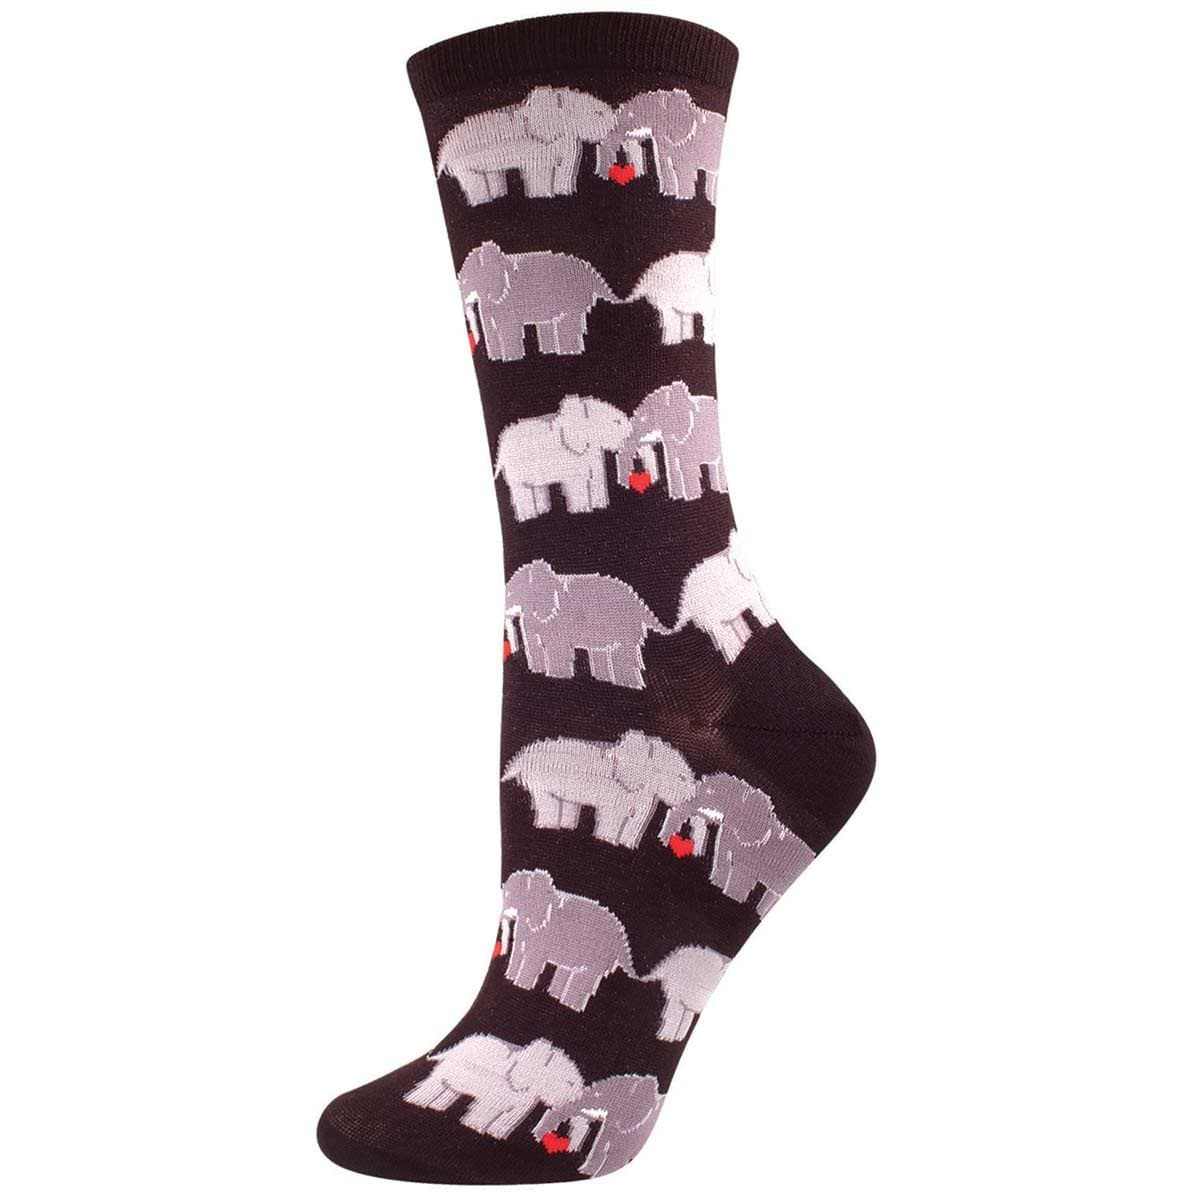 Elephant Love Women's Crew Sock Black